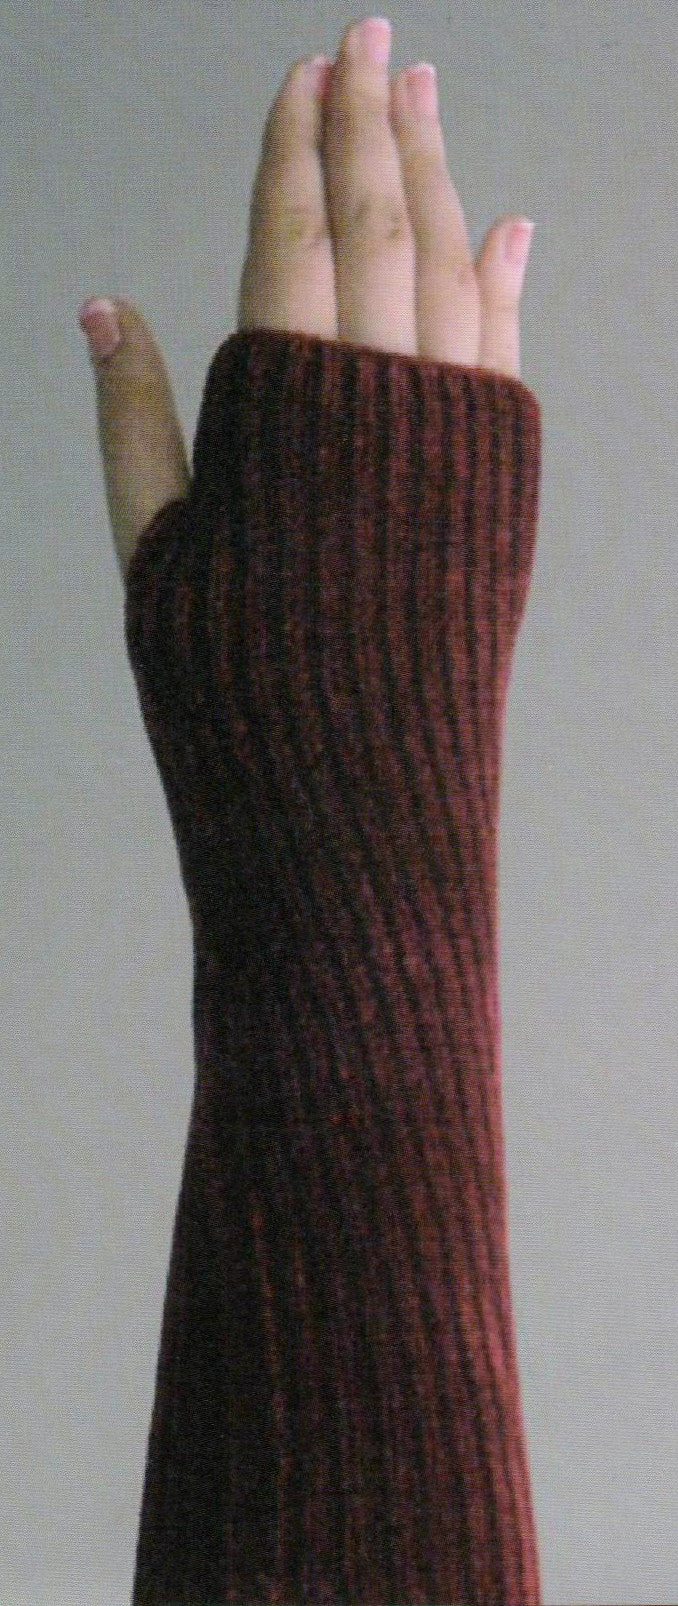 Zazou Chenille Fingerless Glove in Fudge on Model